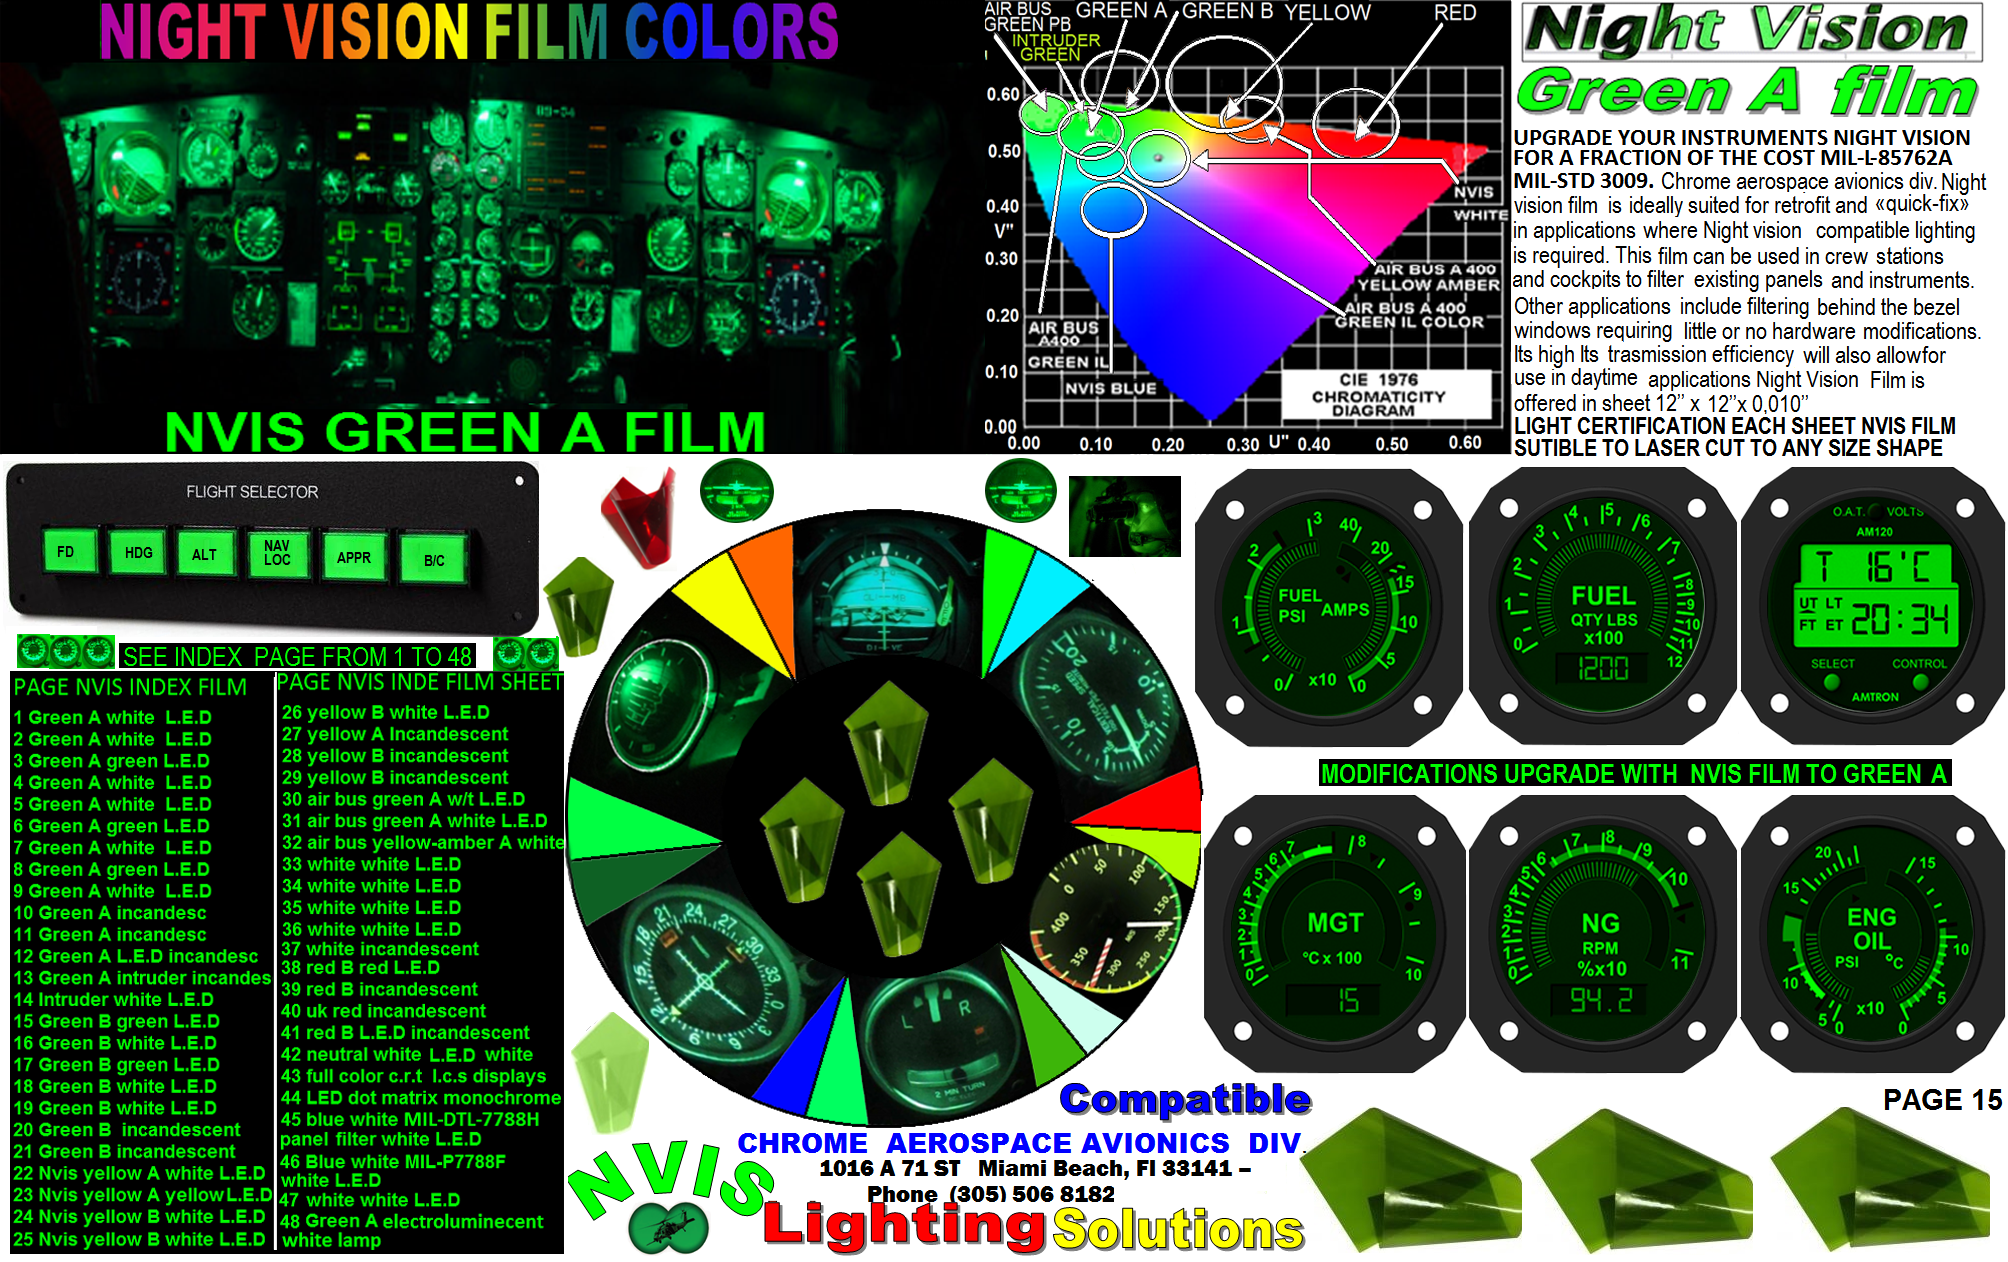 15 NVIS GREEN A FILM UPGRADE CONVERSION INSTRUMENTS 8-9-19